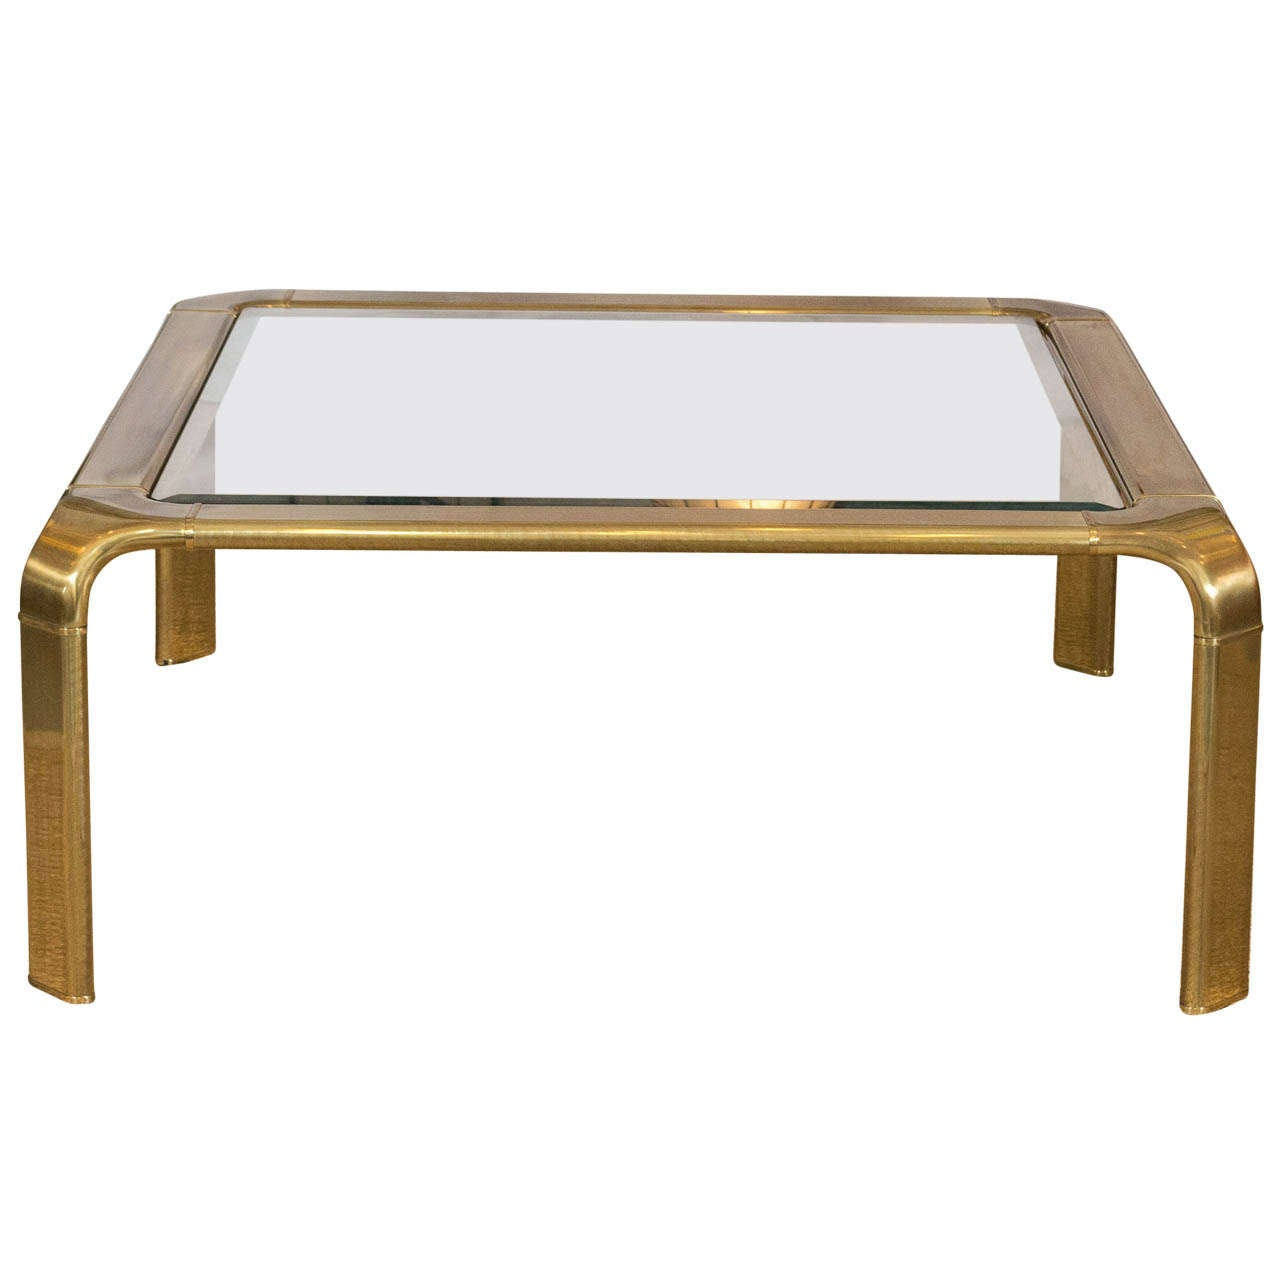 Sensuous 1970 39 S Brass Coffee Table By Mastercraft At 1stdibs